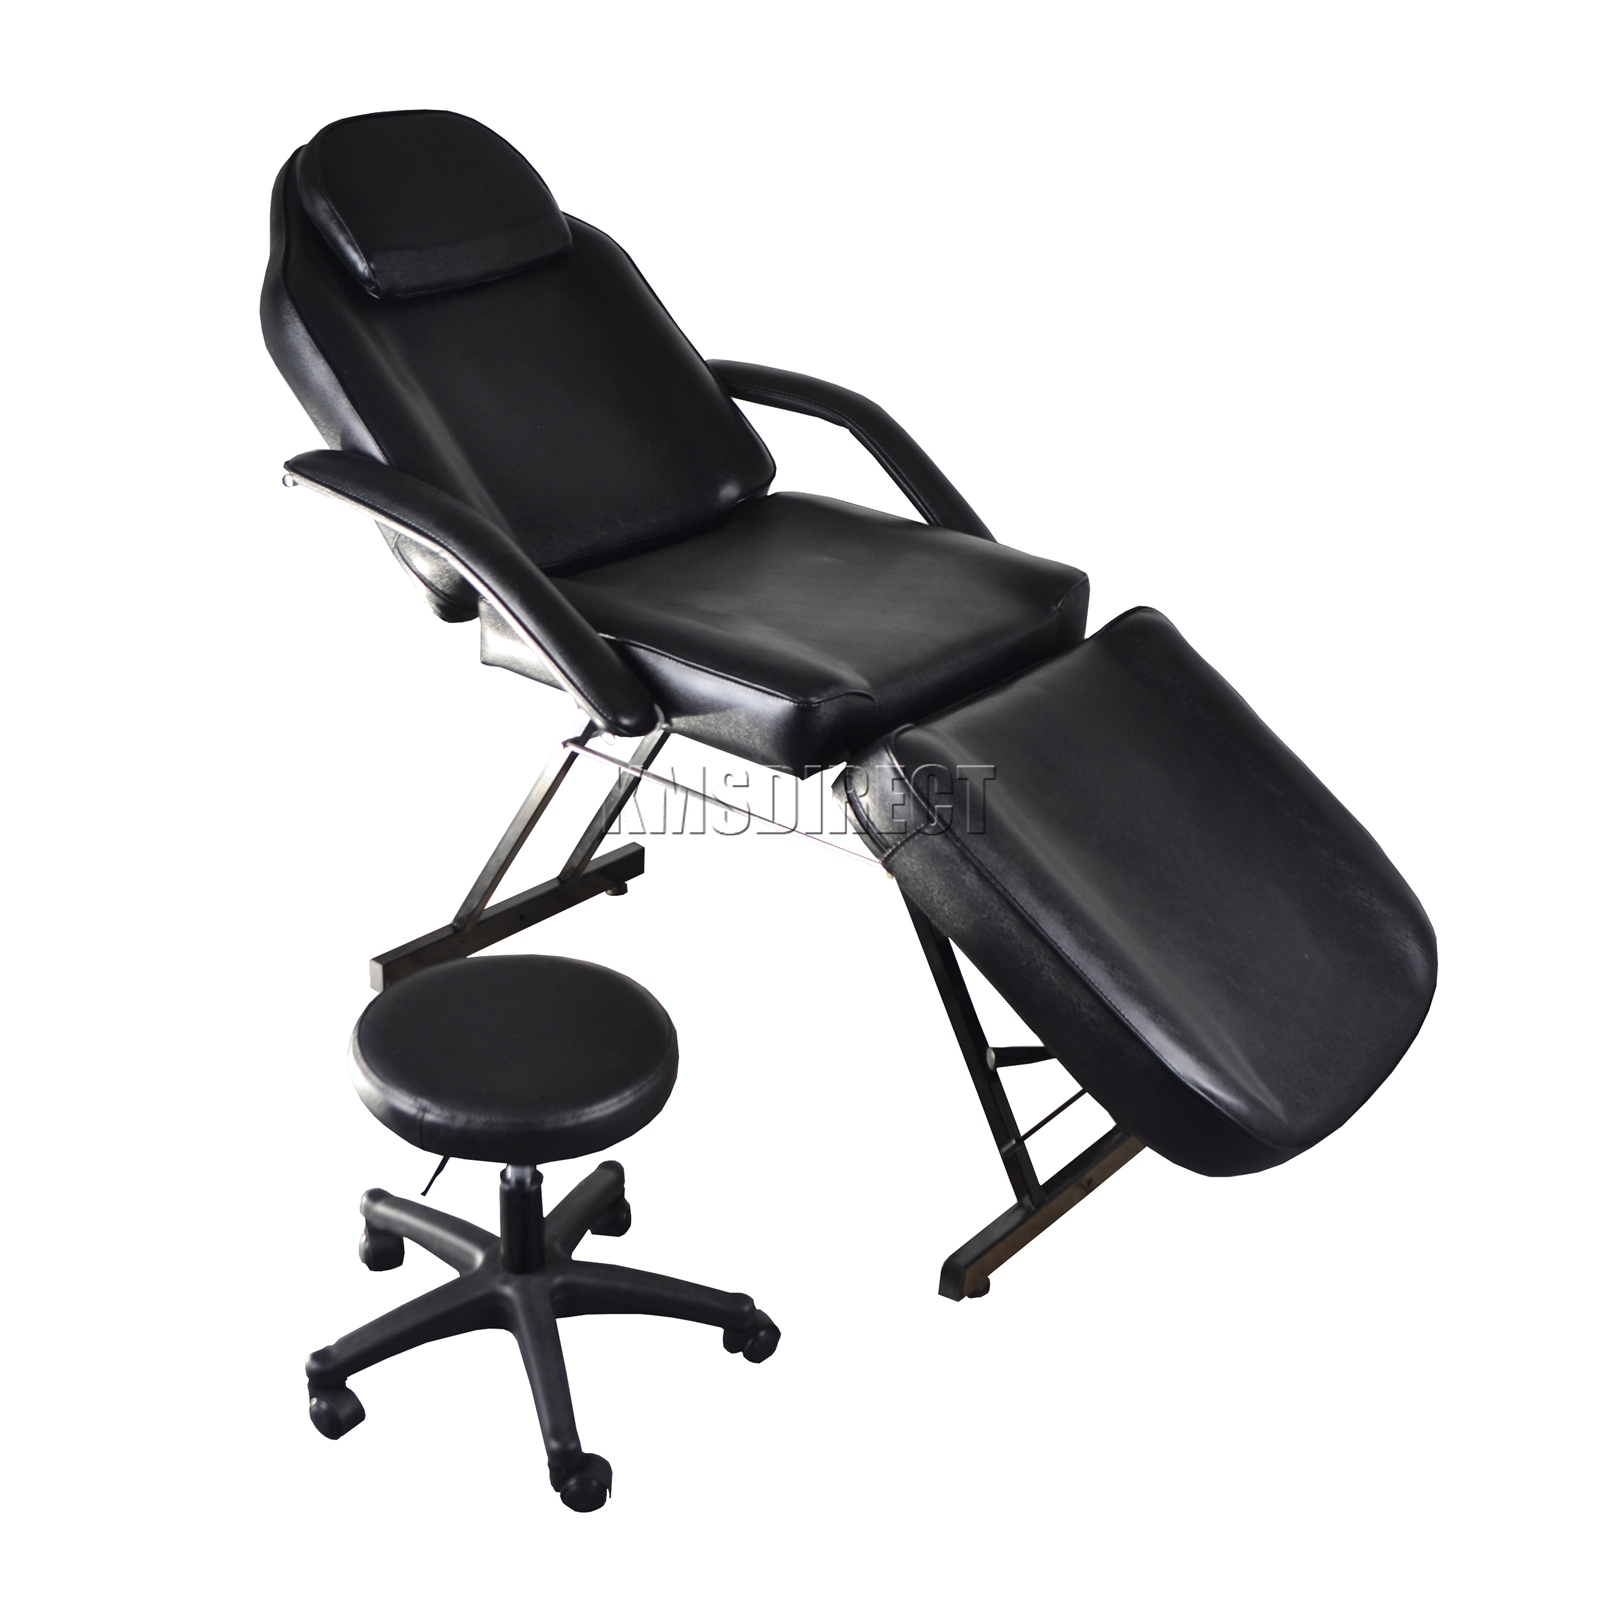 Sillas Terapeuticas Para Masajes Westwood Beauty Salon Chair Massage Table Tattoo Facial